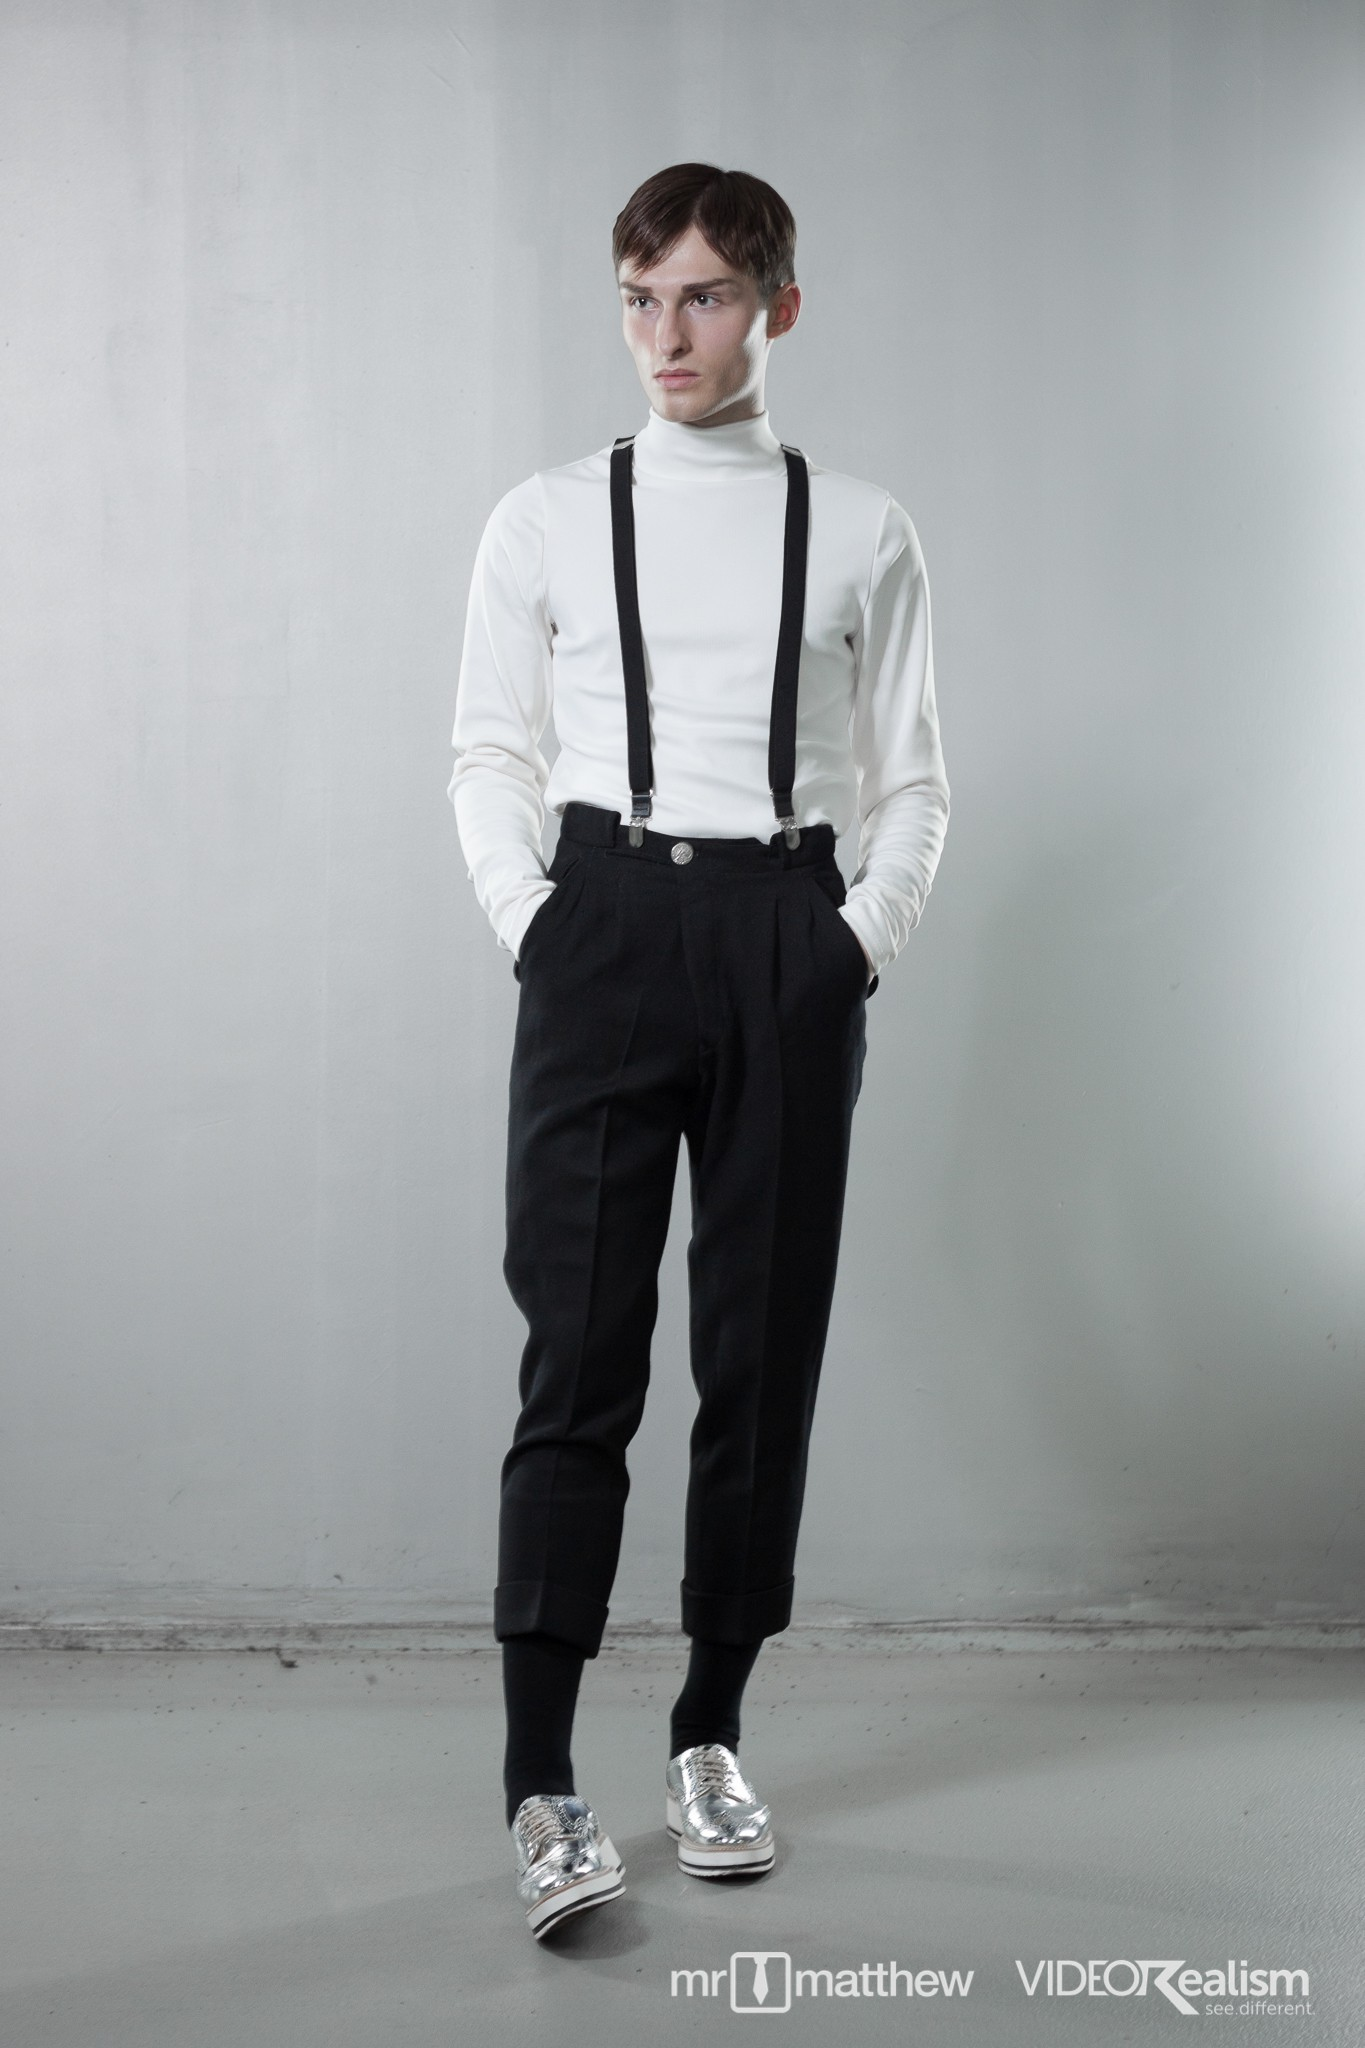 Hosenträger Männer The All Day Gatsby Style - Outfit Inspiration By Mister